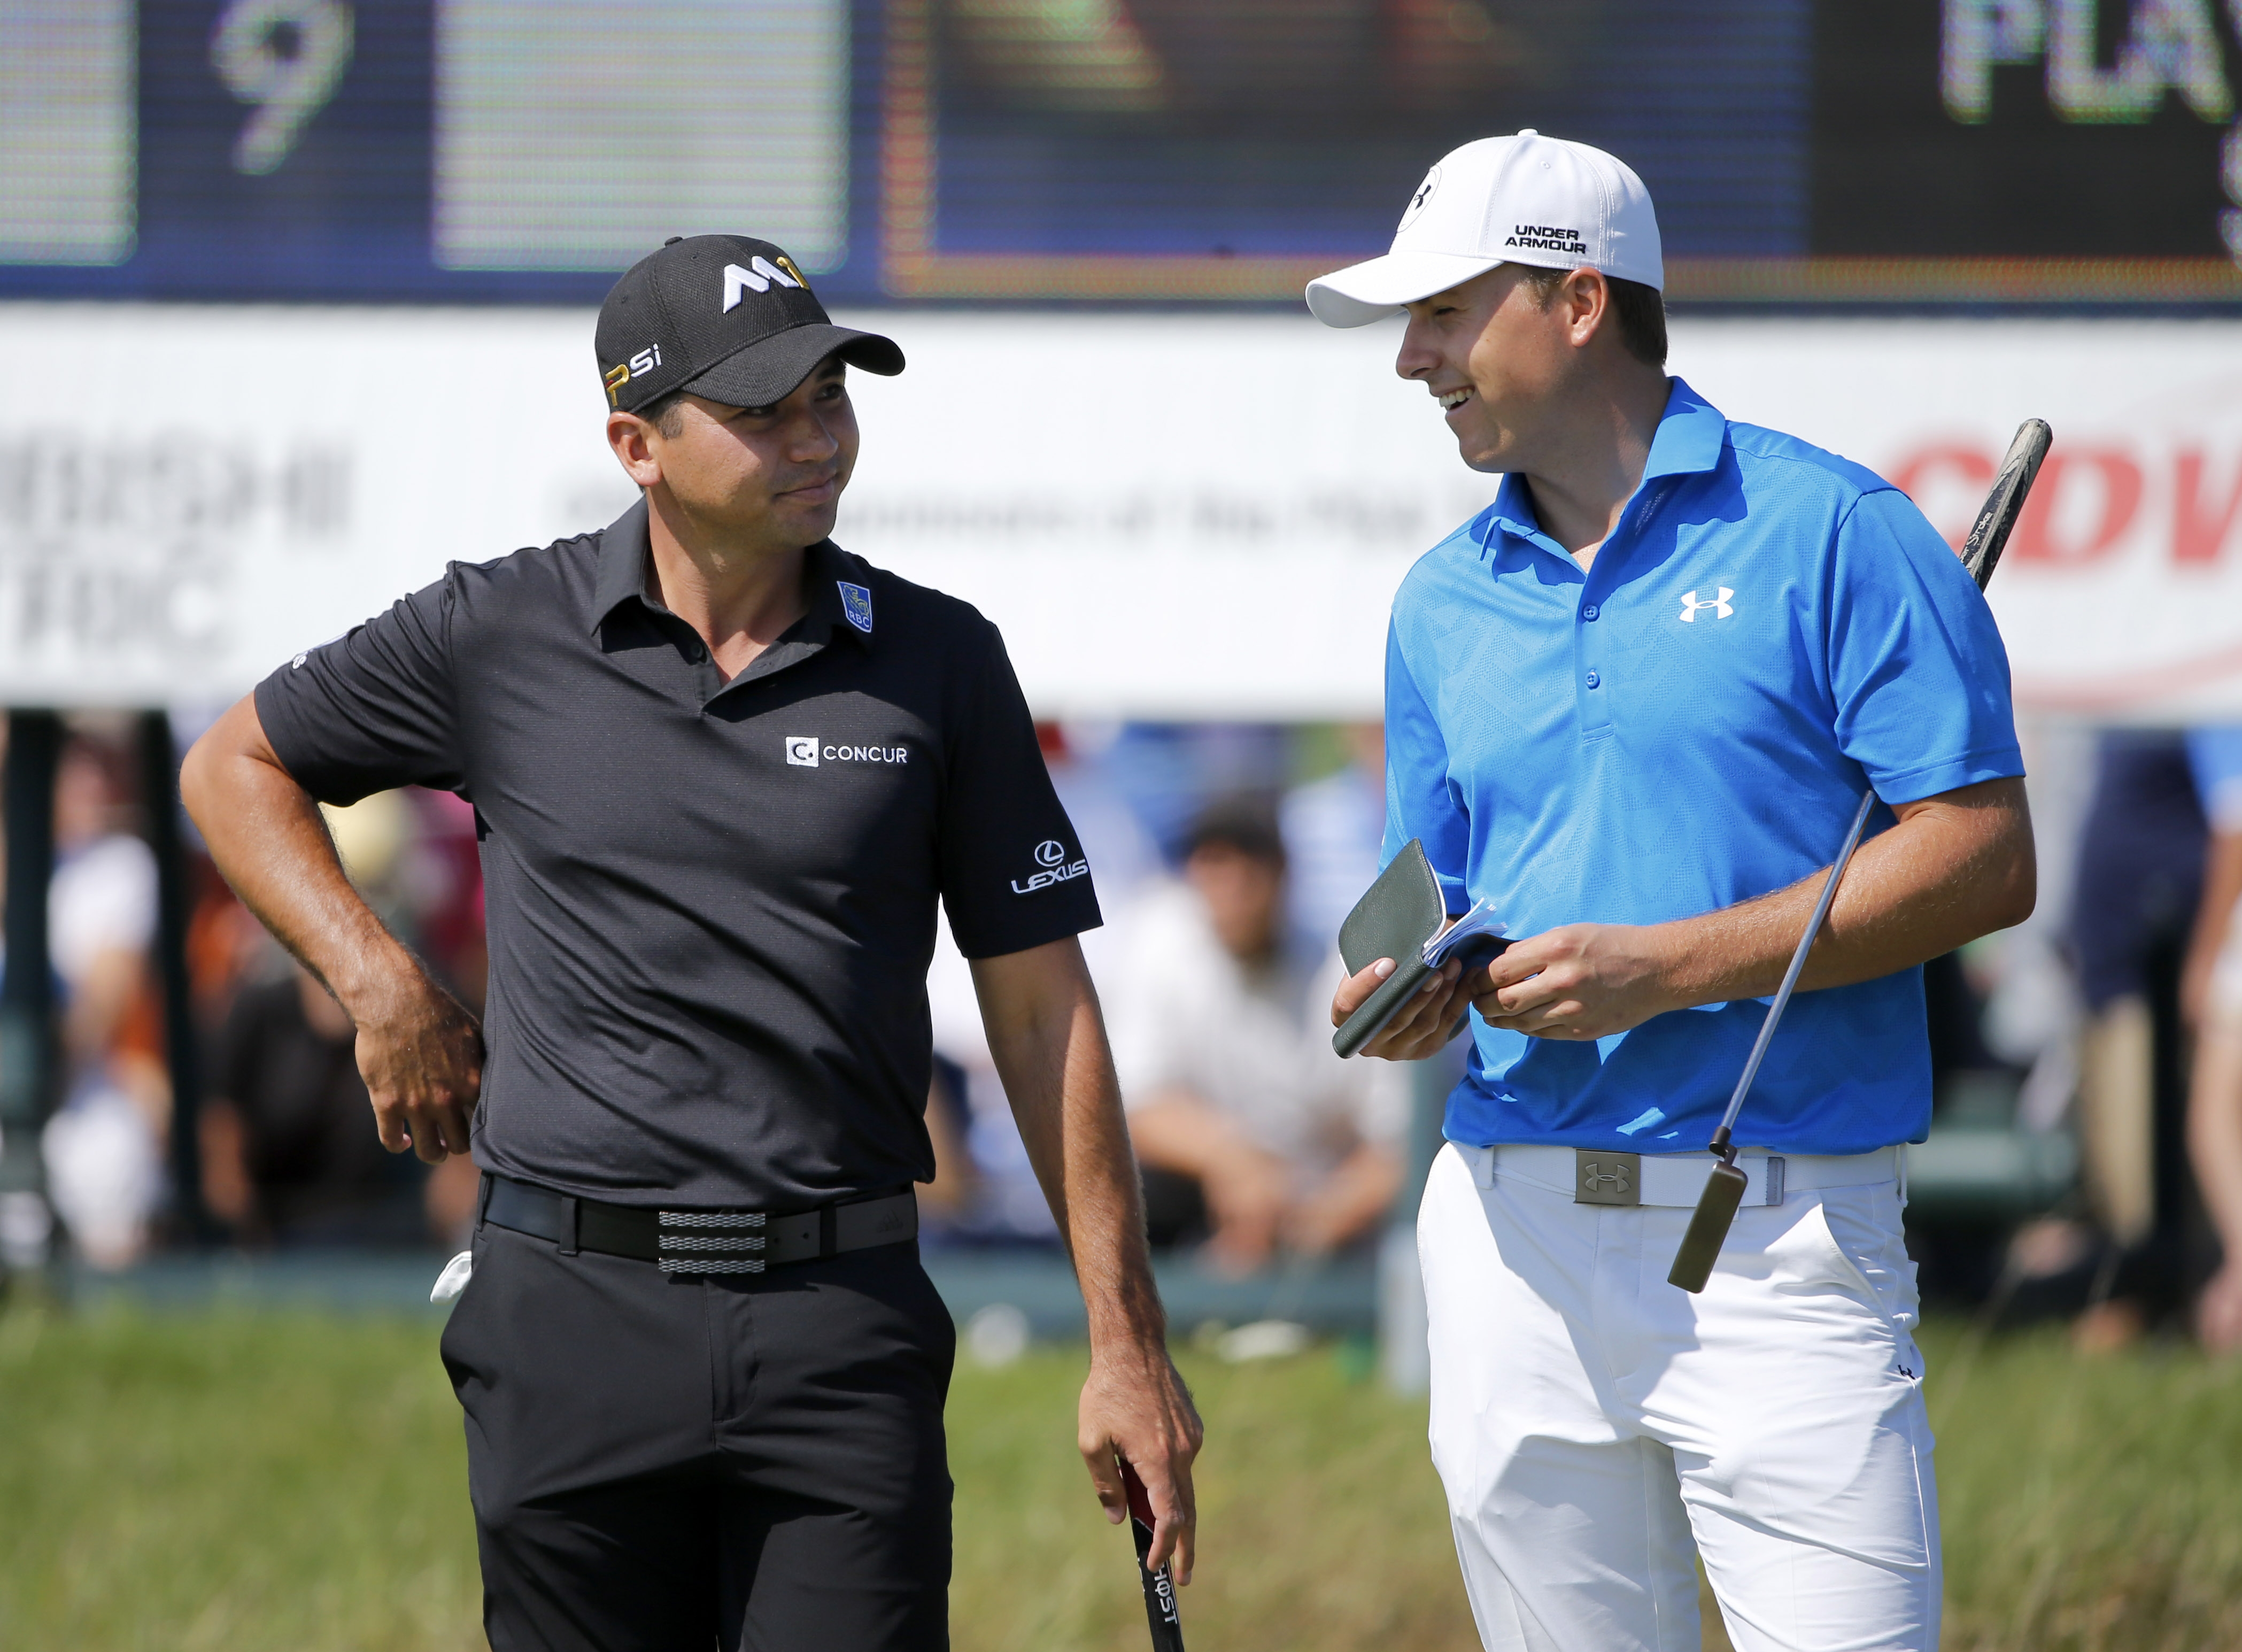 Jason Day, left, of Australia,  talks with Jordan Spieth on the 10th green, during the first round of the BMW Championship golf tournament at Conway Farms Golf Club, Thursday, Sept. 17, 2015, in Lake Forest, Ill. (AP Photo/Charles Rex Arbogast)